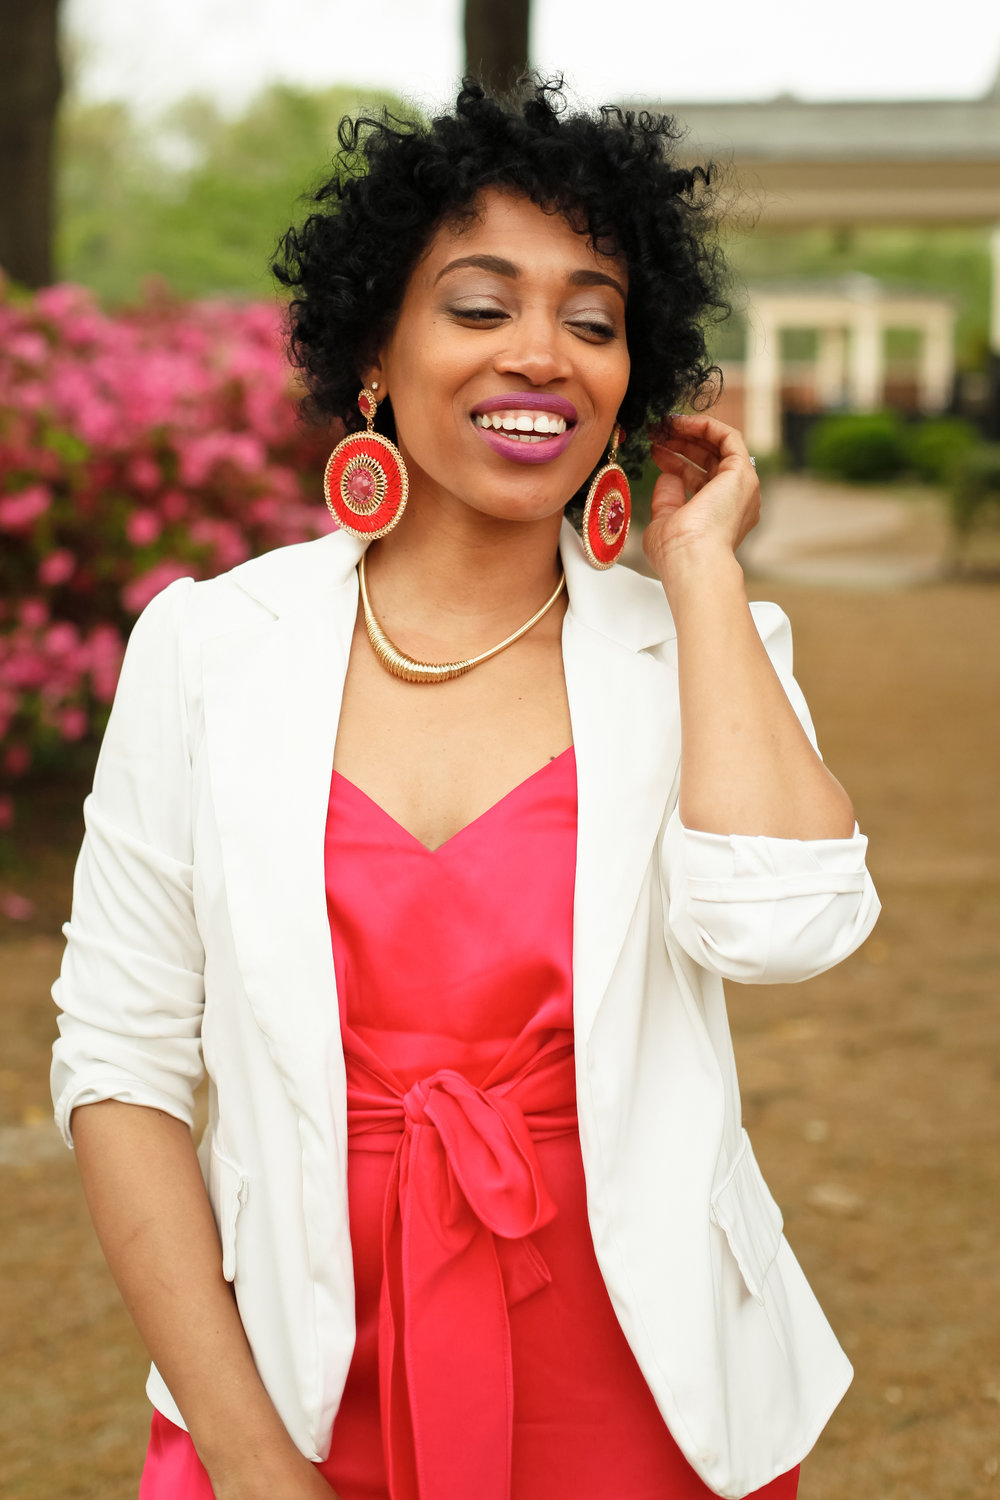 Andrea Fenise Memphis Fashion Blogger shares content feedback form